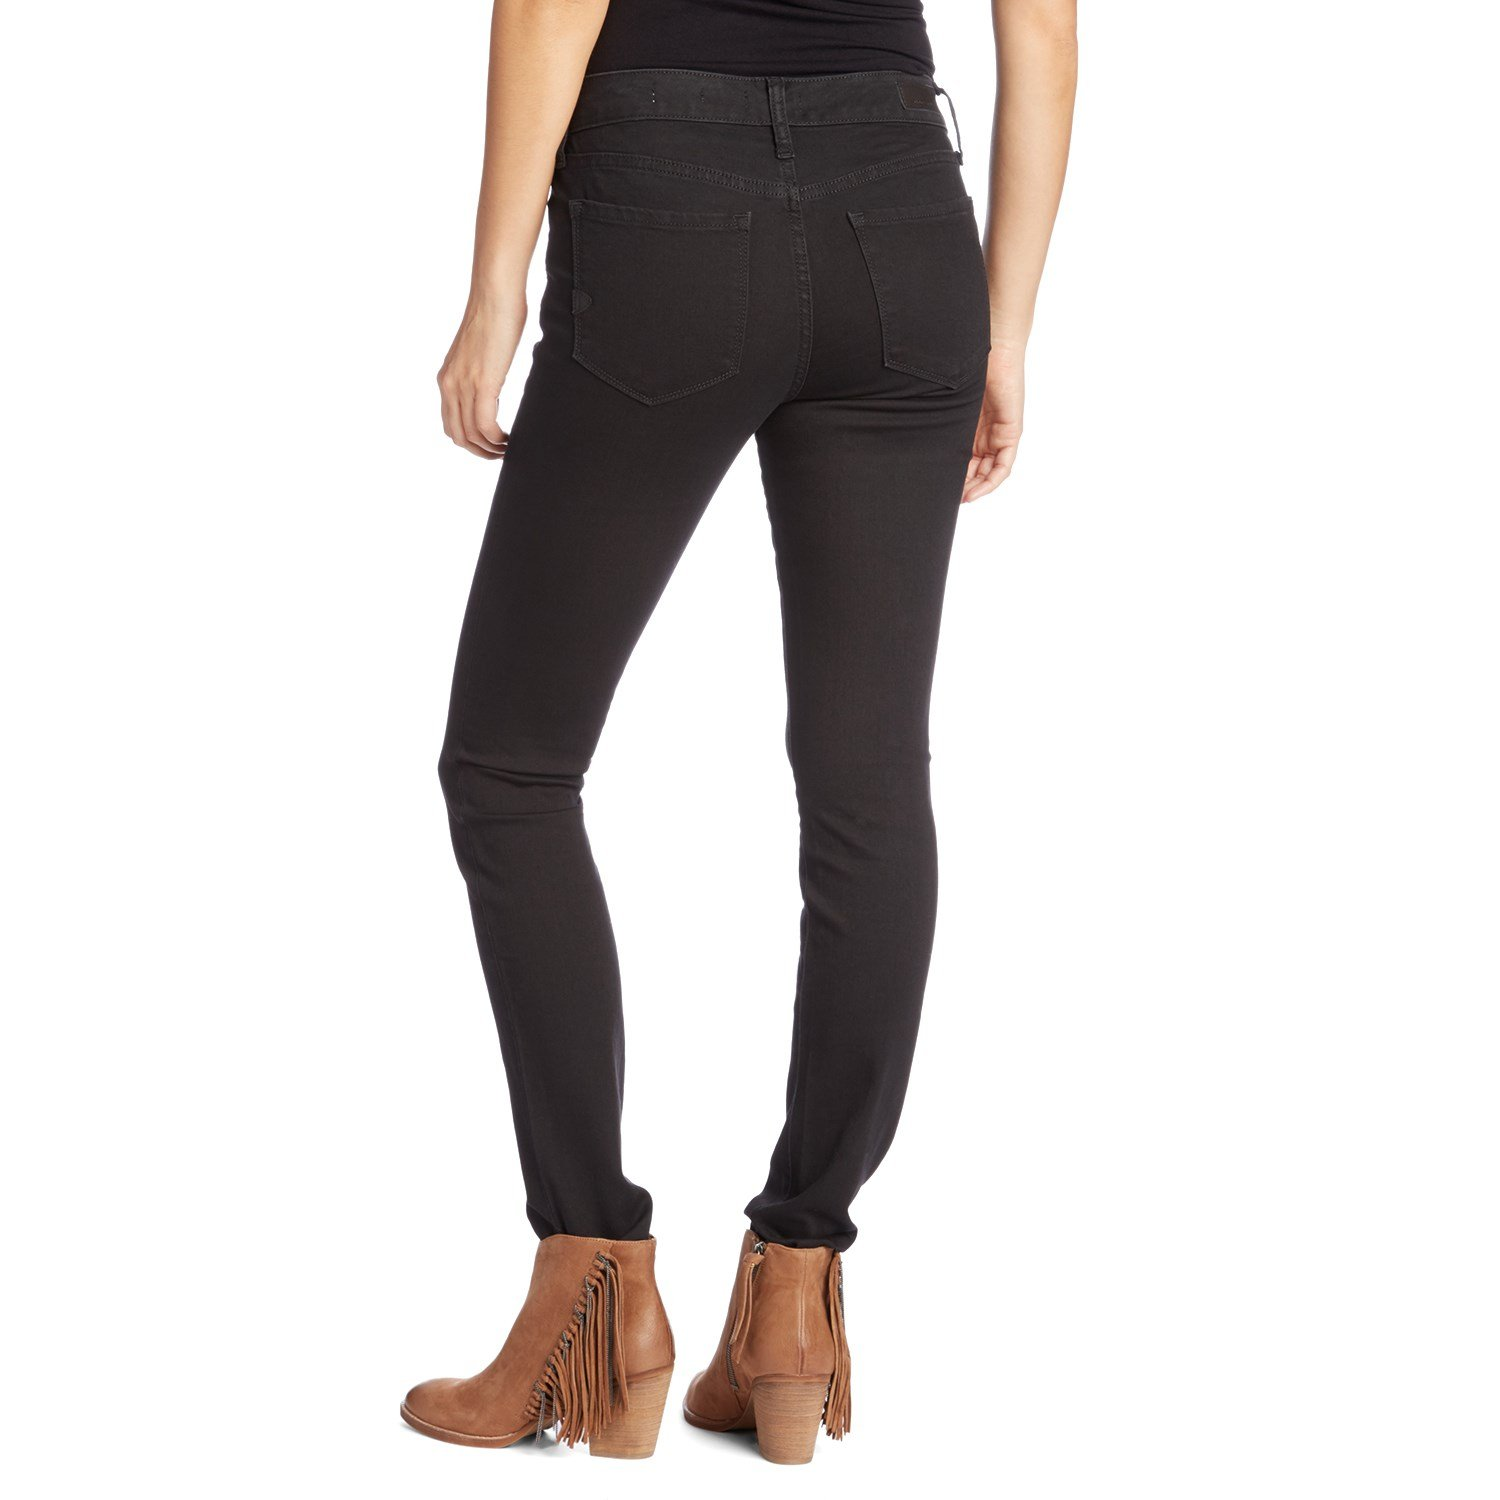 Jacob Davis Uma Skinny Jeans - Women&39s | evo outlet